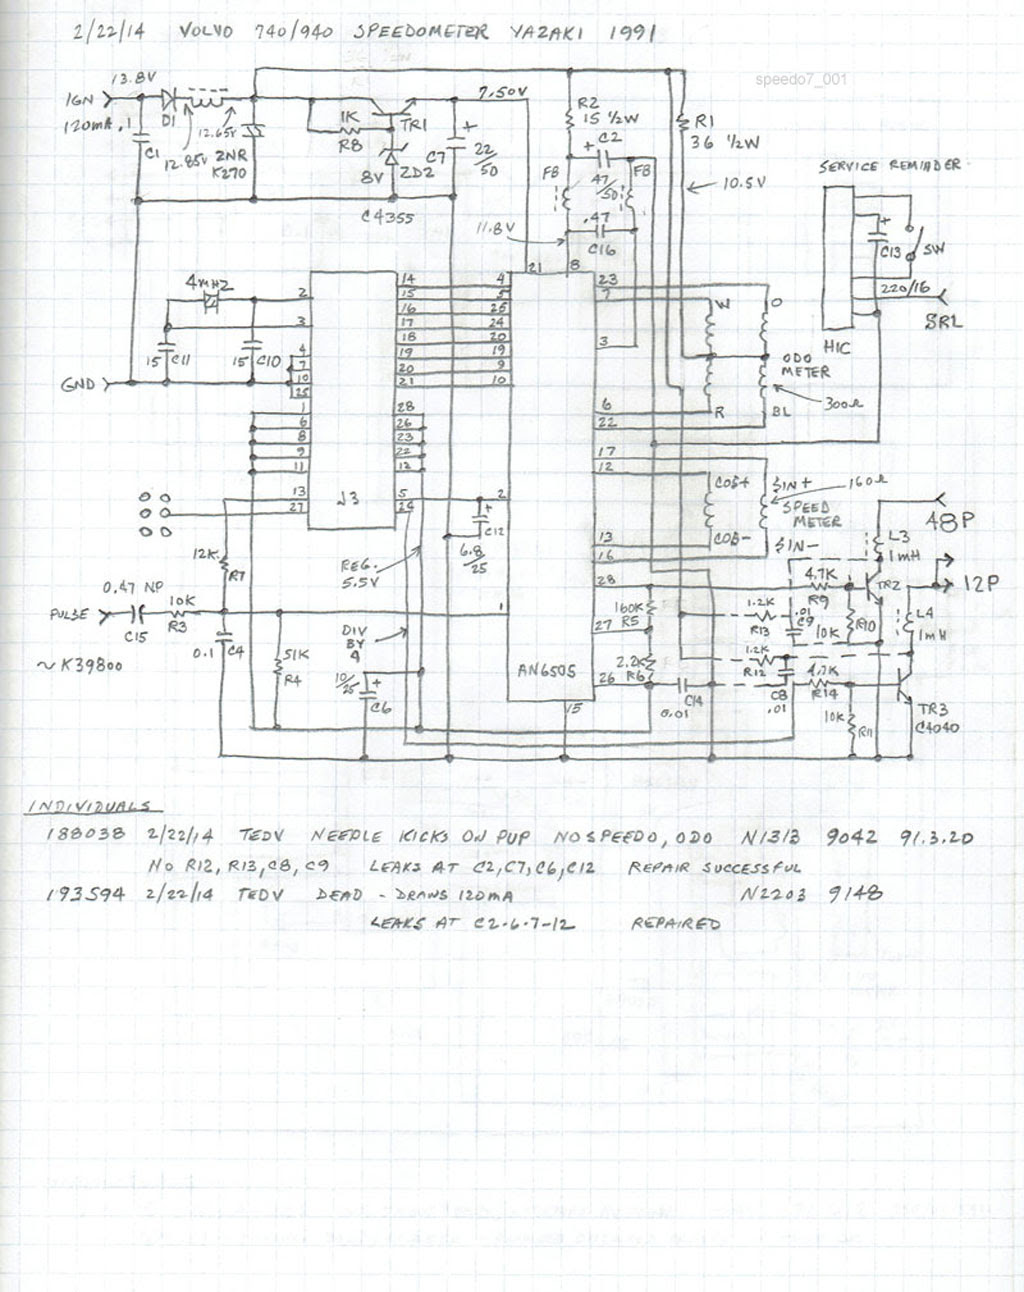 Volvo 740 Wiring Diagram 1991